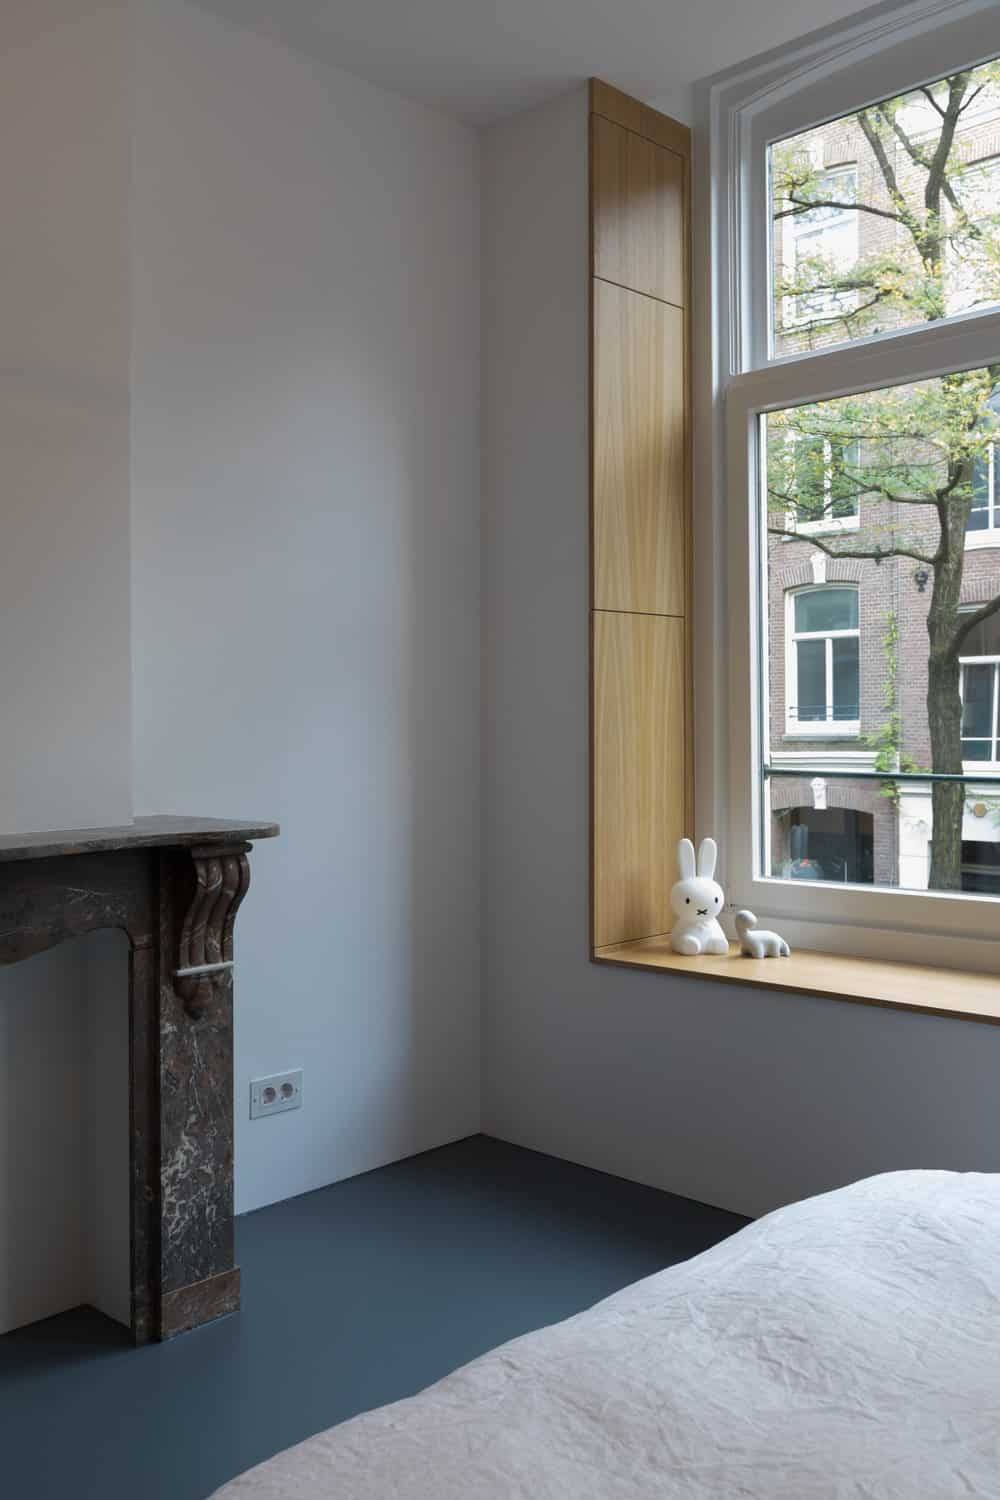 Windows by the primary bedroom in the Frans Halsstraat designed by Cantero Architecture.